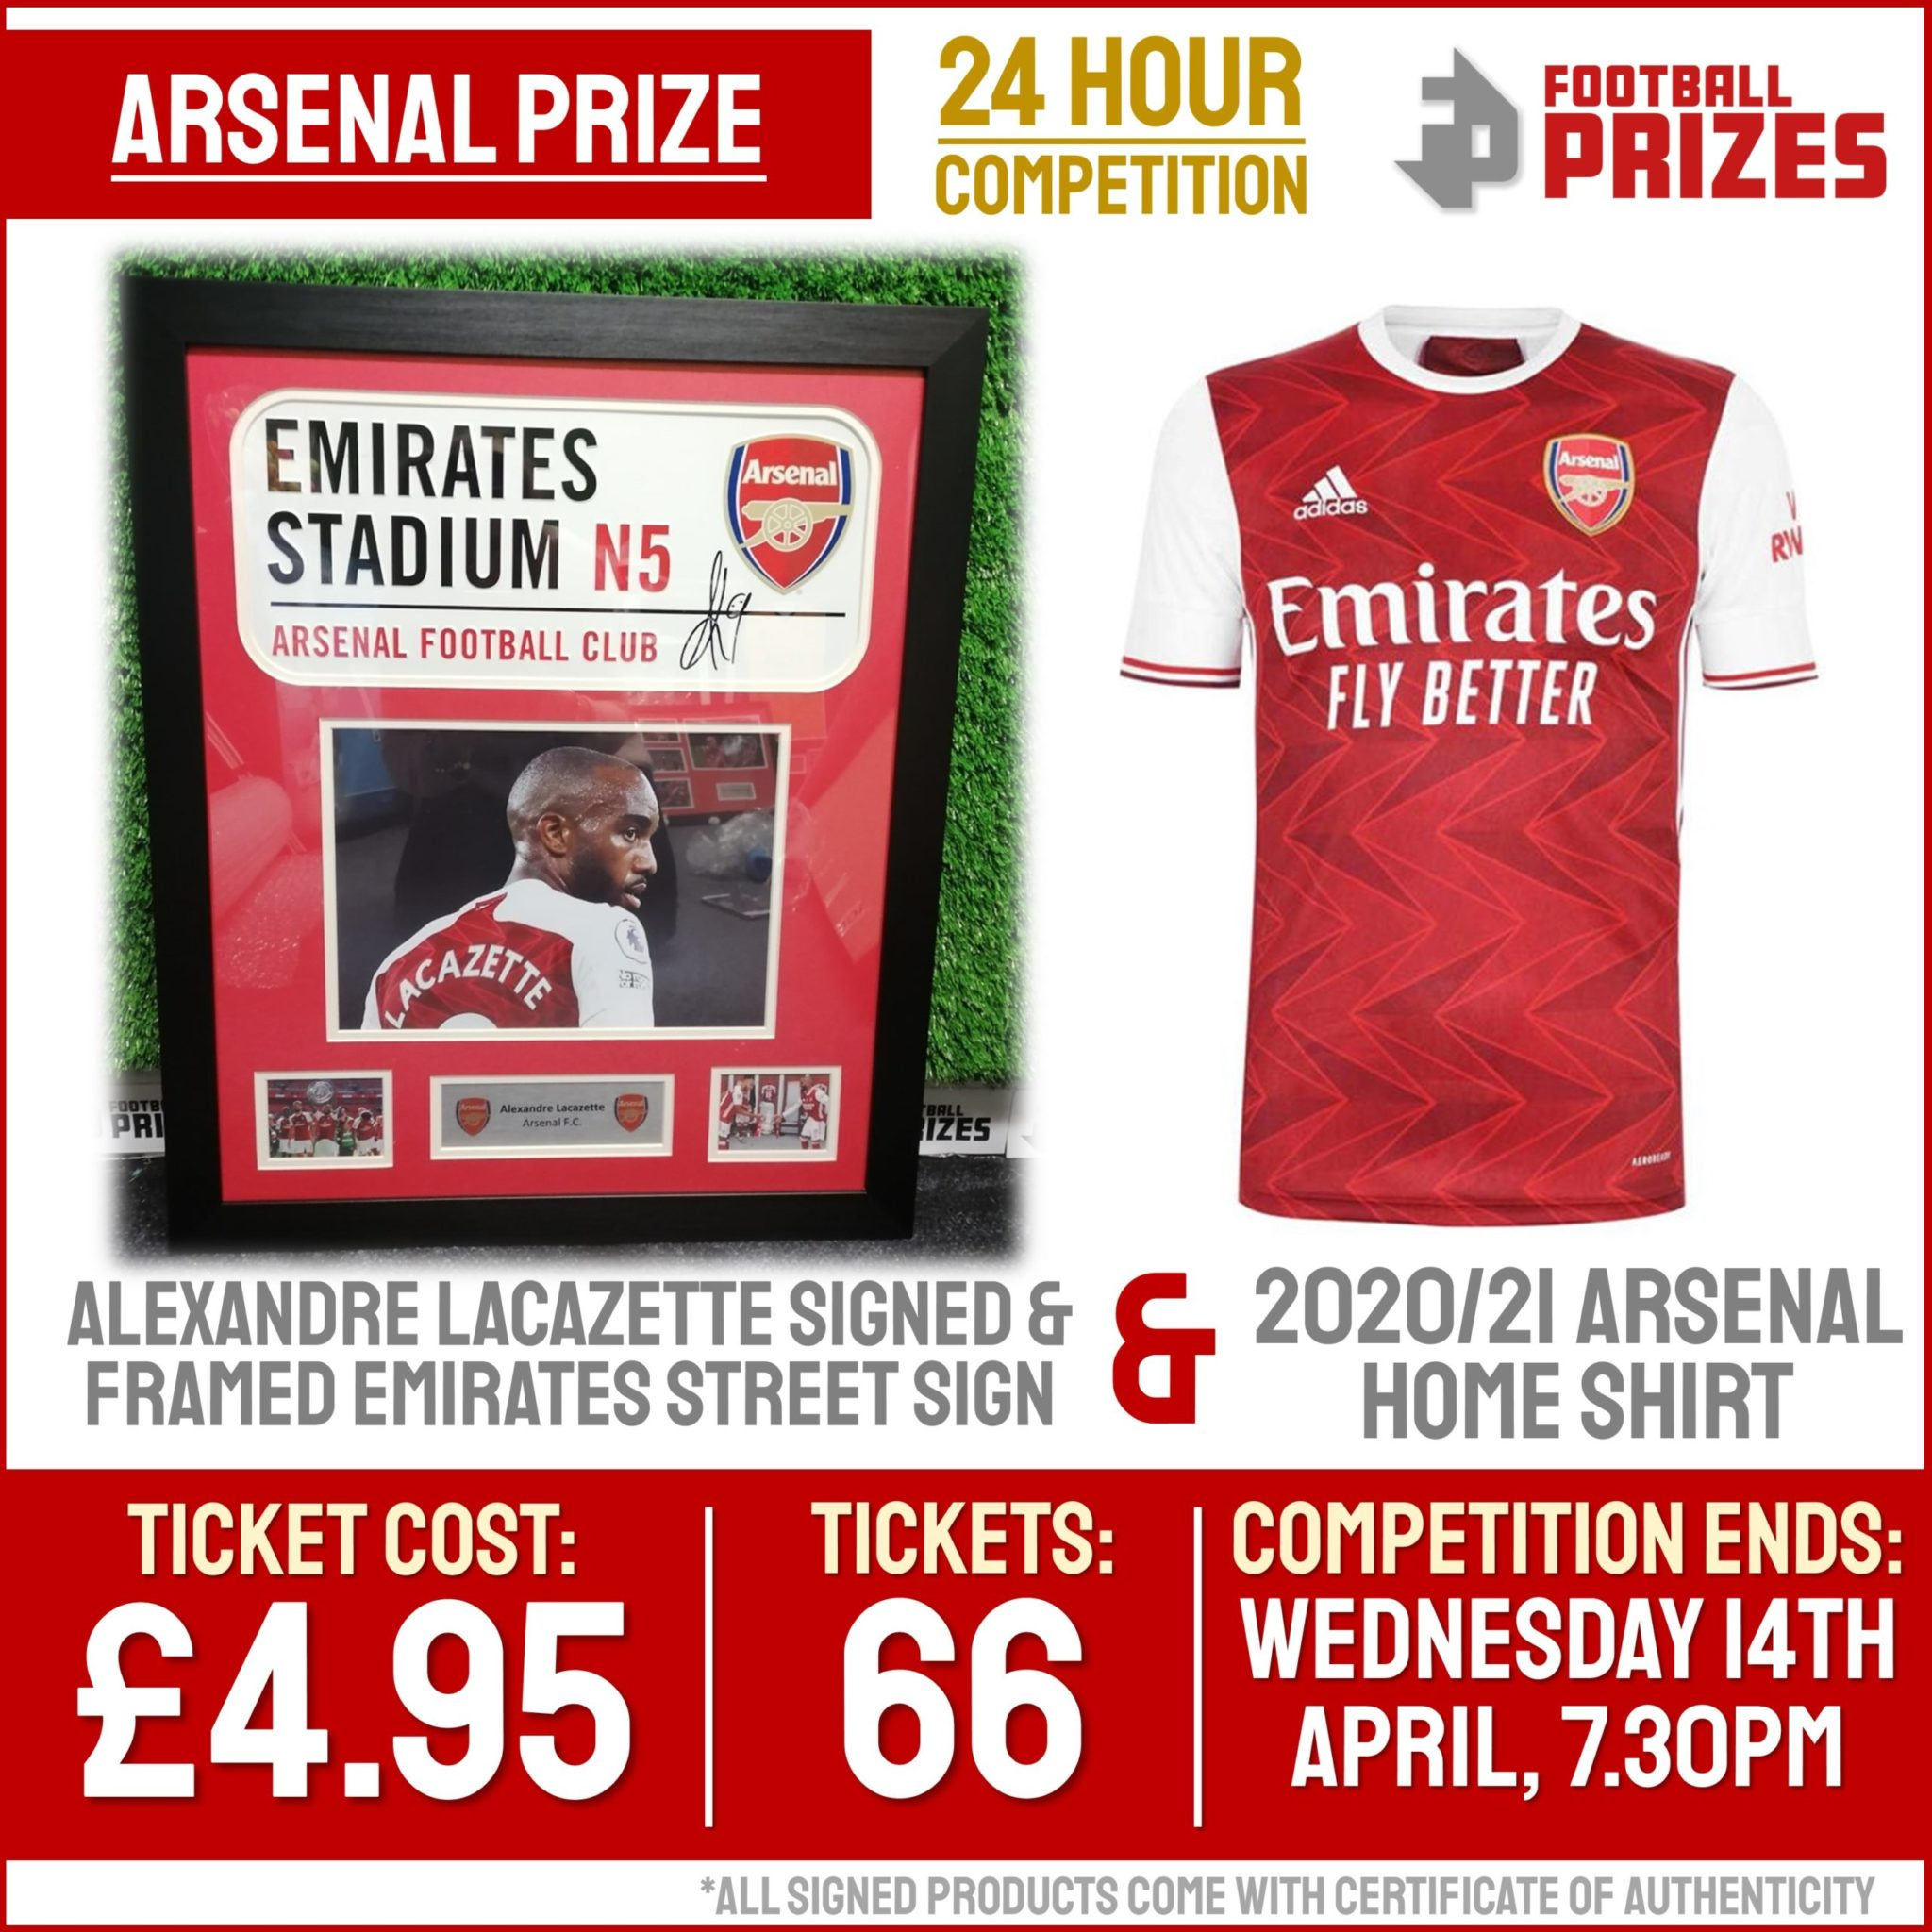 Ends today at 7.30pm! Alexandre Lacazette Signed & Framed Arsenal Montage PLUS 2020/21 Arsenal Home Shirt